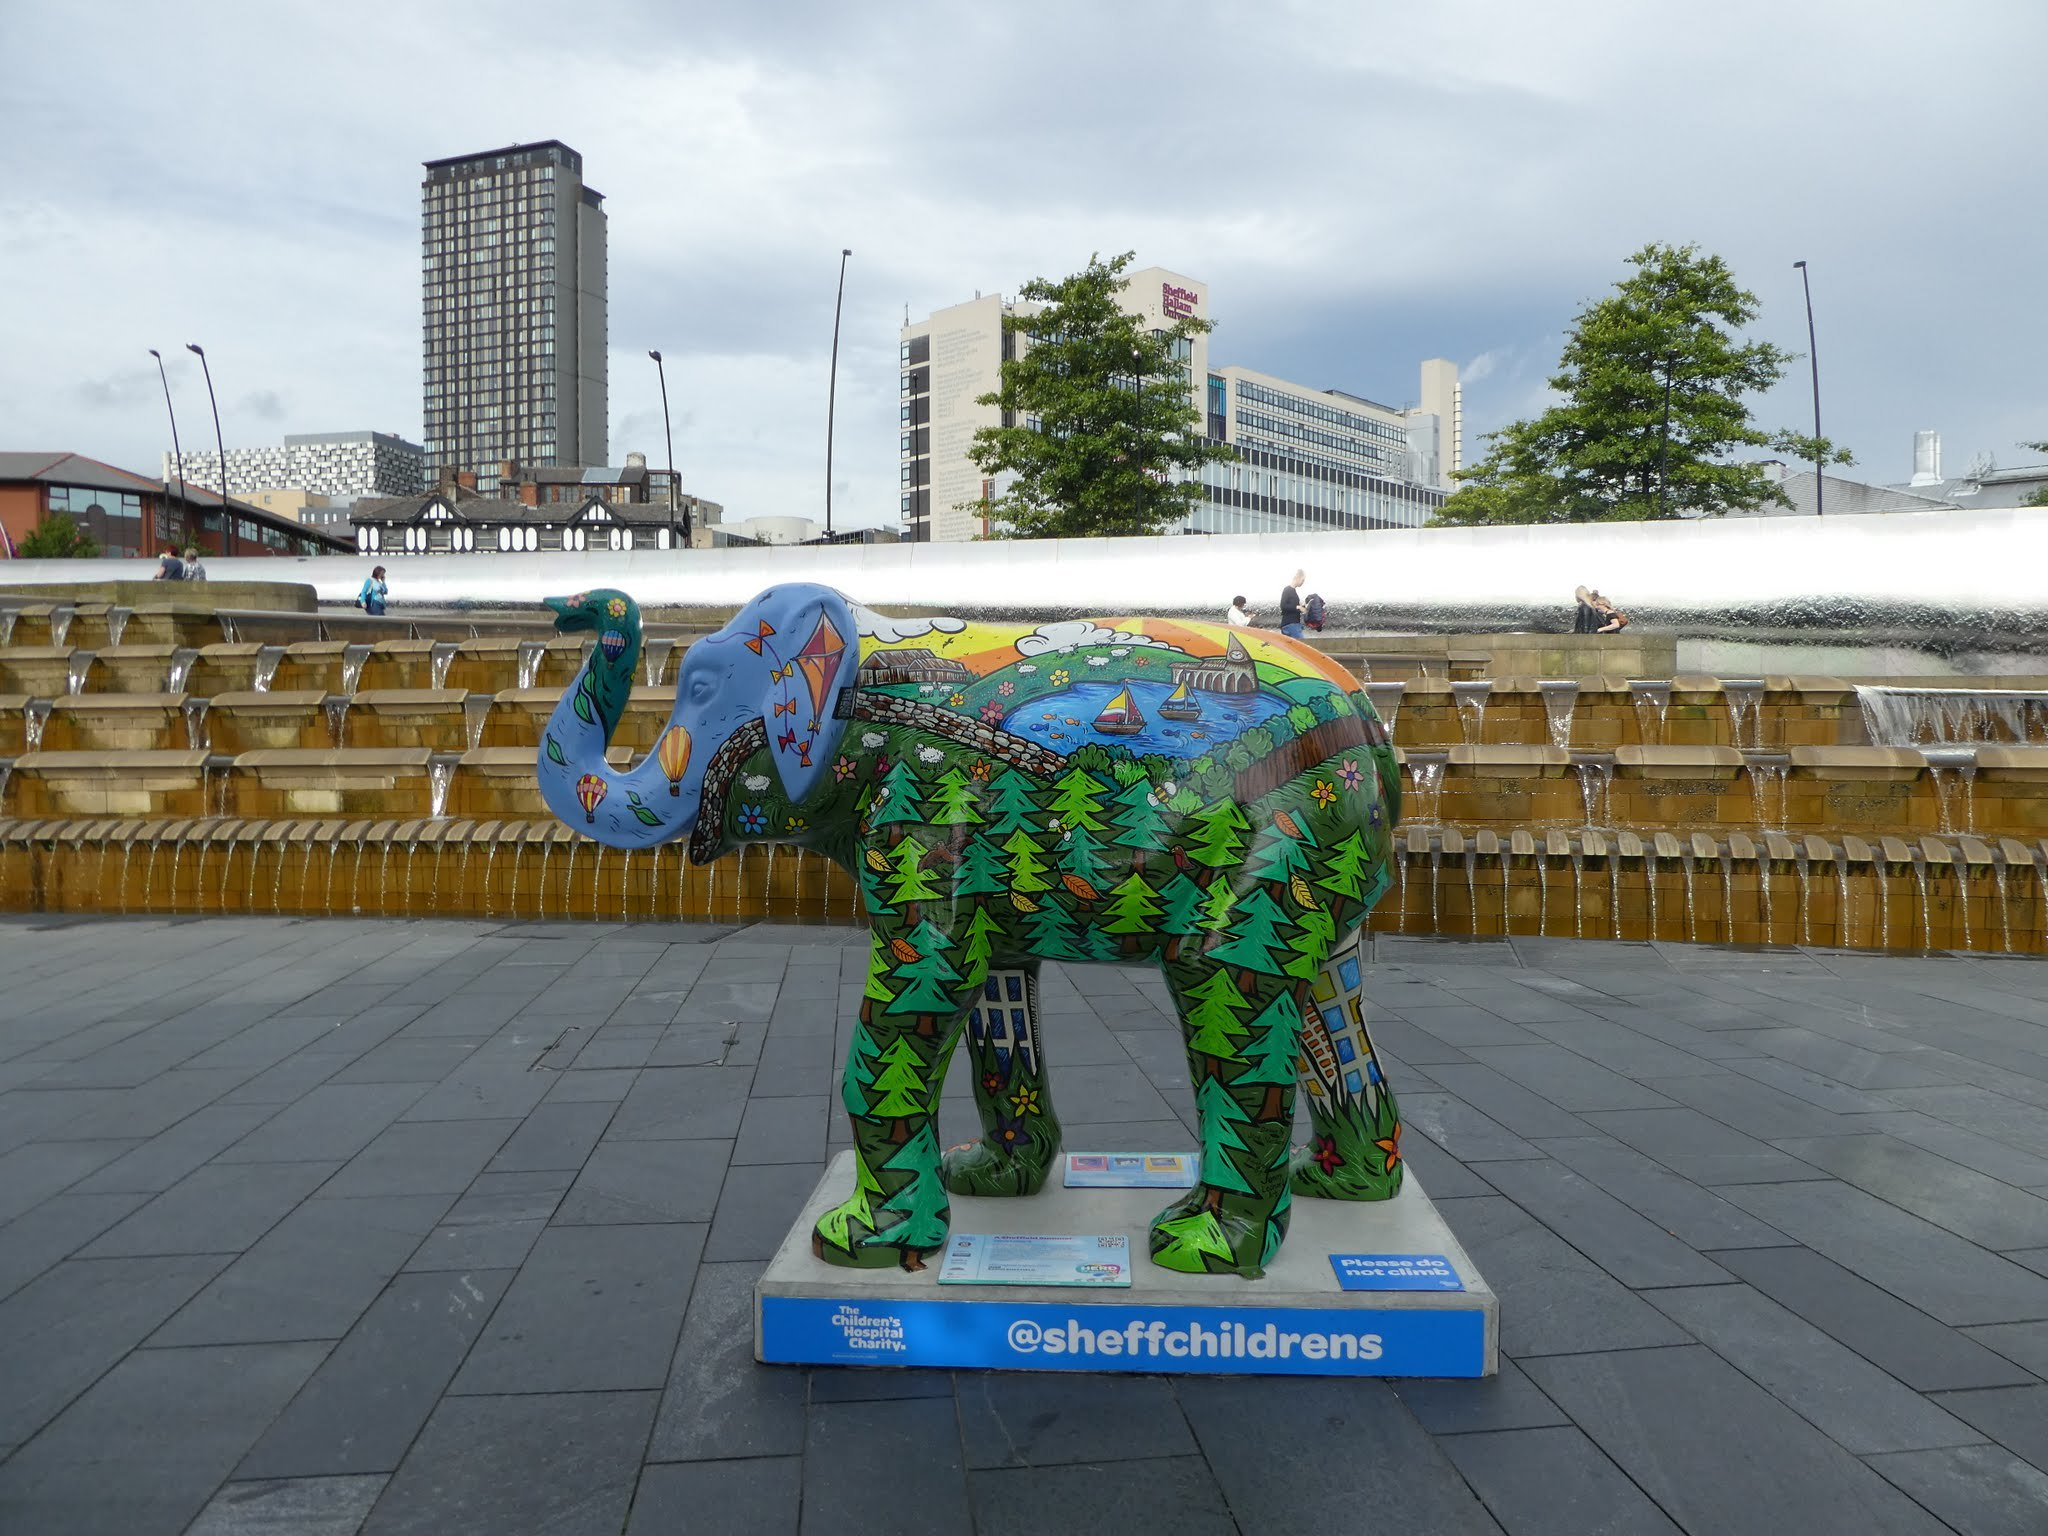 Herd of Elephants, Sheaf Square, Sheffield